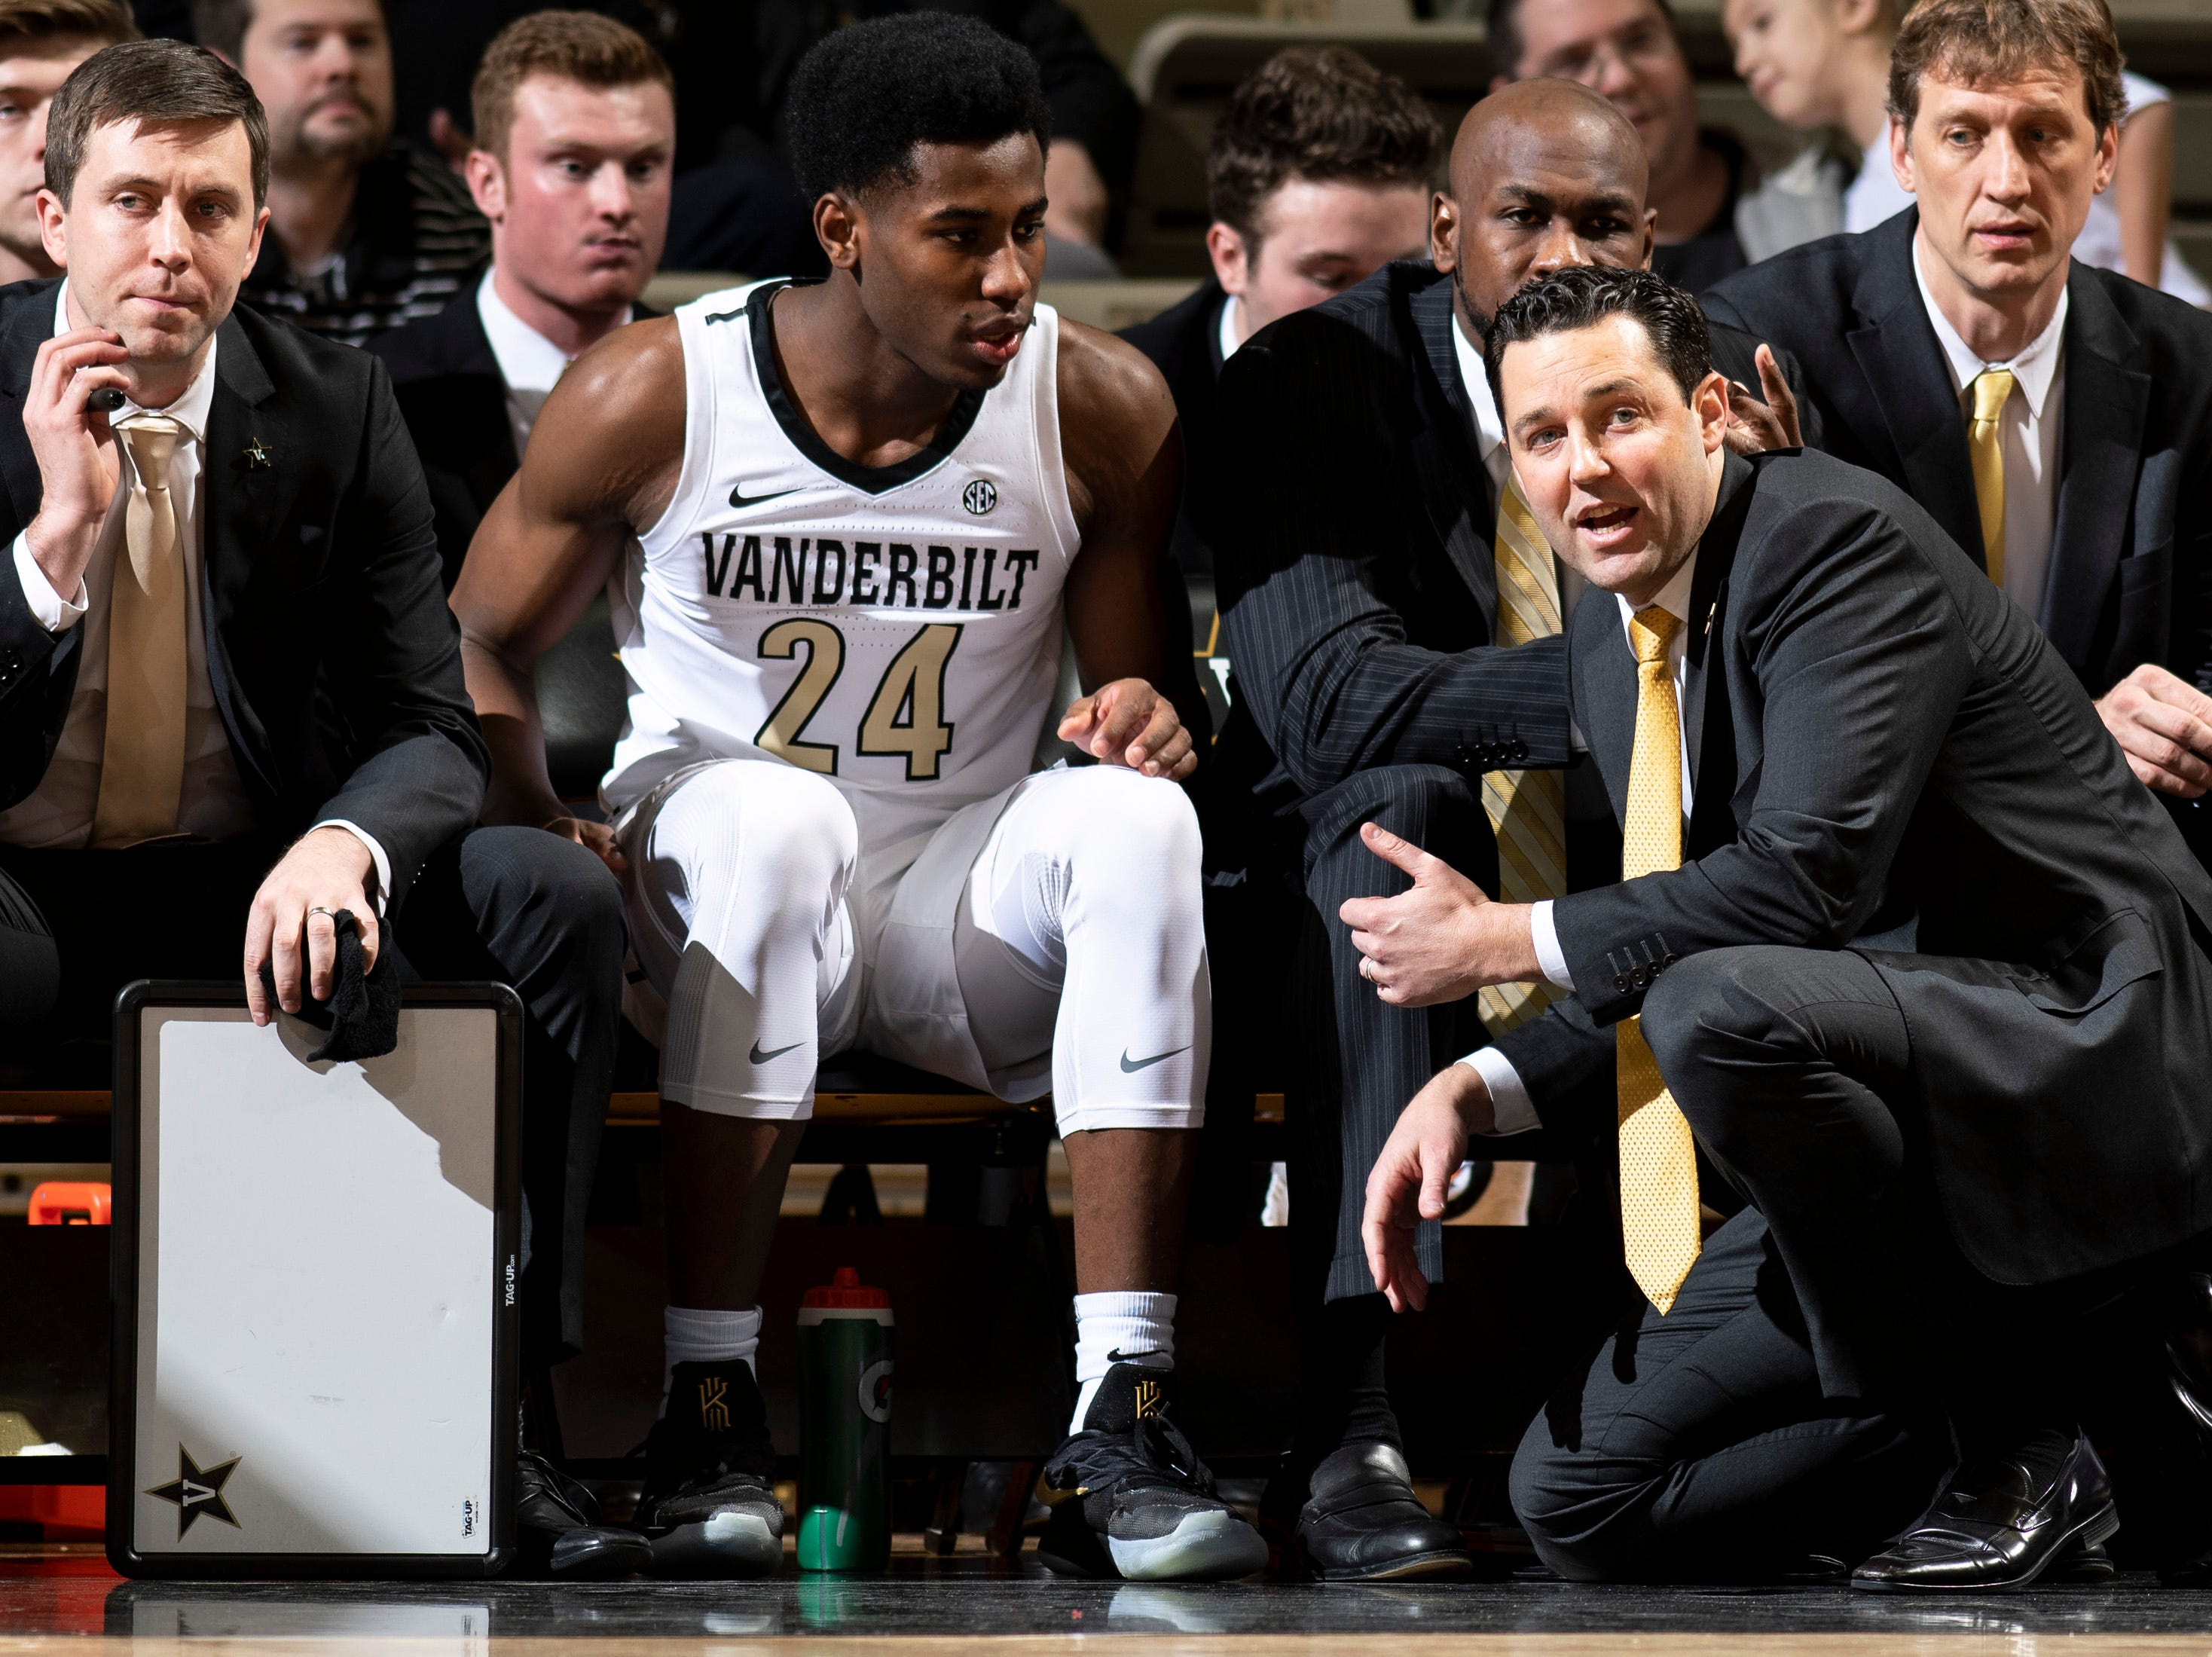 Vanderbilt head coach Bryce Drew works with forward Aaron Nesmith (24) during the first half against MTSU at Memorial Gym in Nashville, Tenn., Wednesday, Dec. 5, 2018.